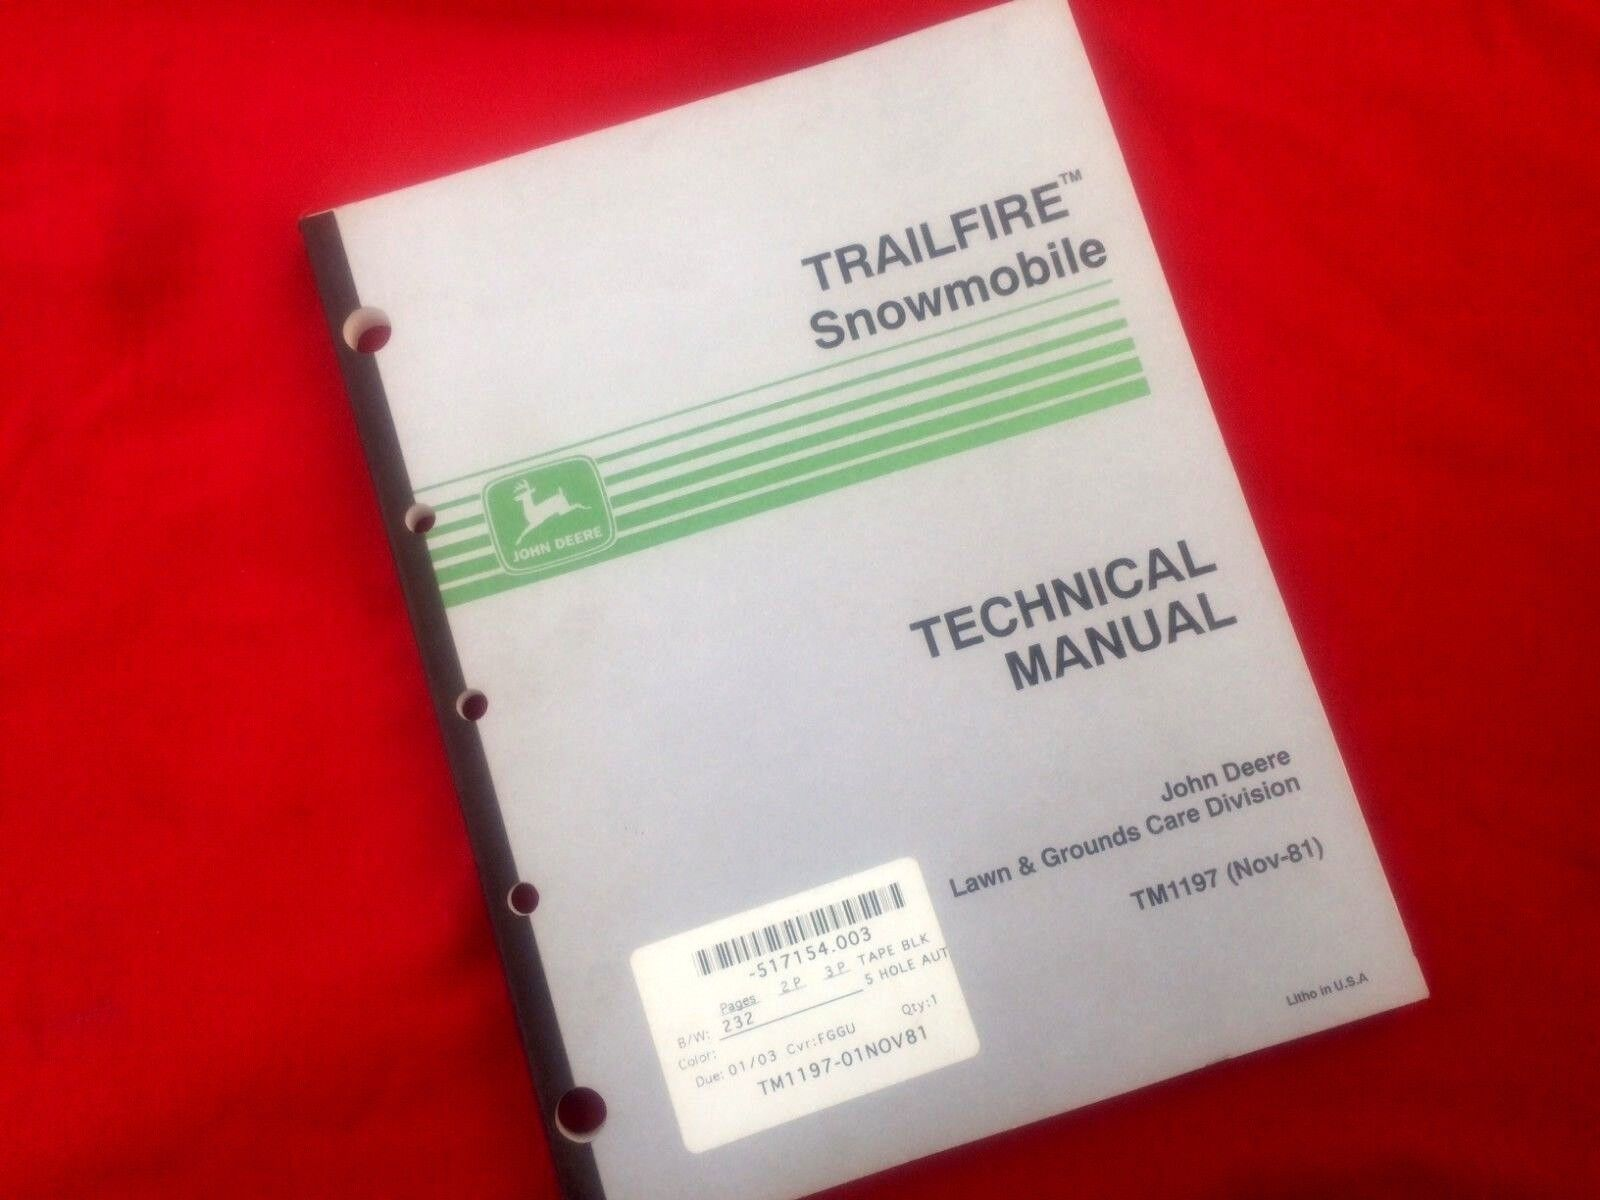 John  Deere Trailfire Snowmobile Technical Manual TM1197 (Nov-81)  welcome to choose